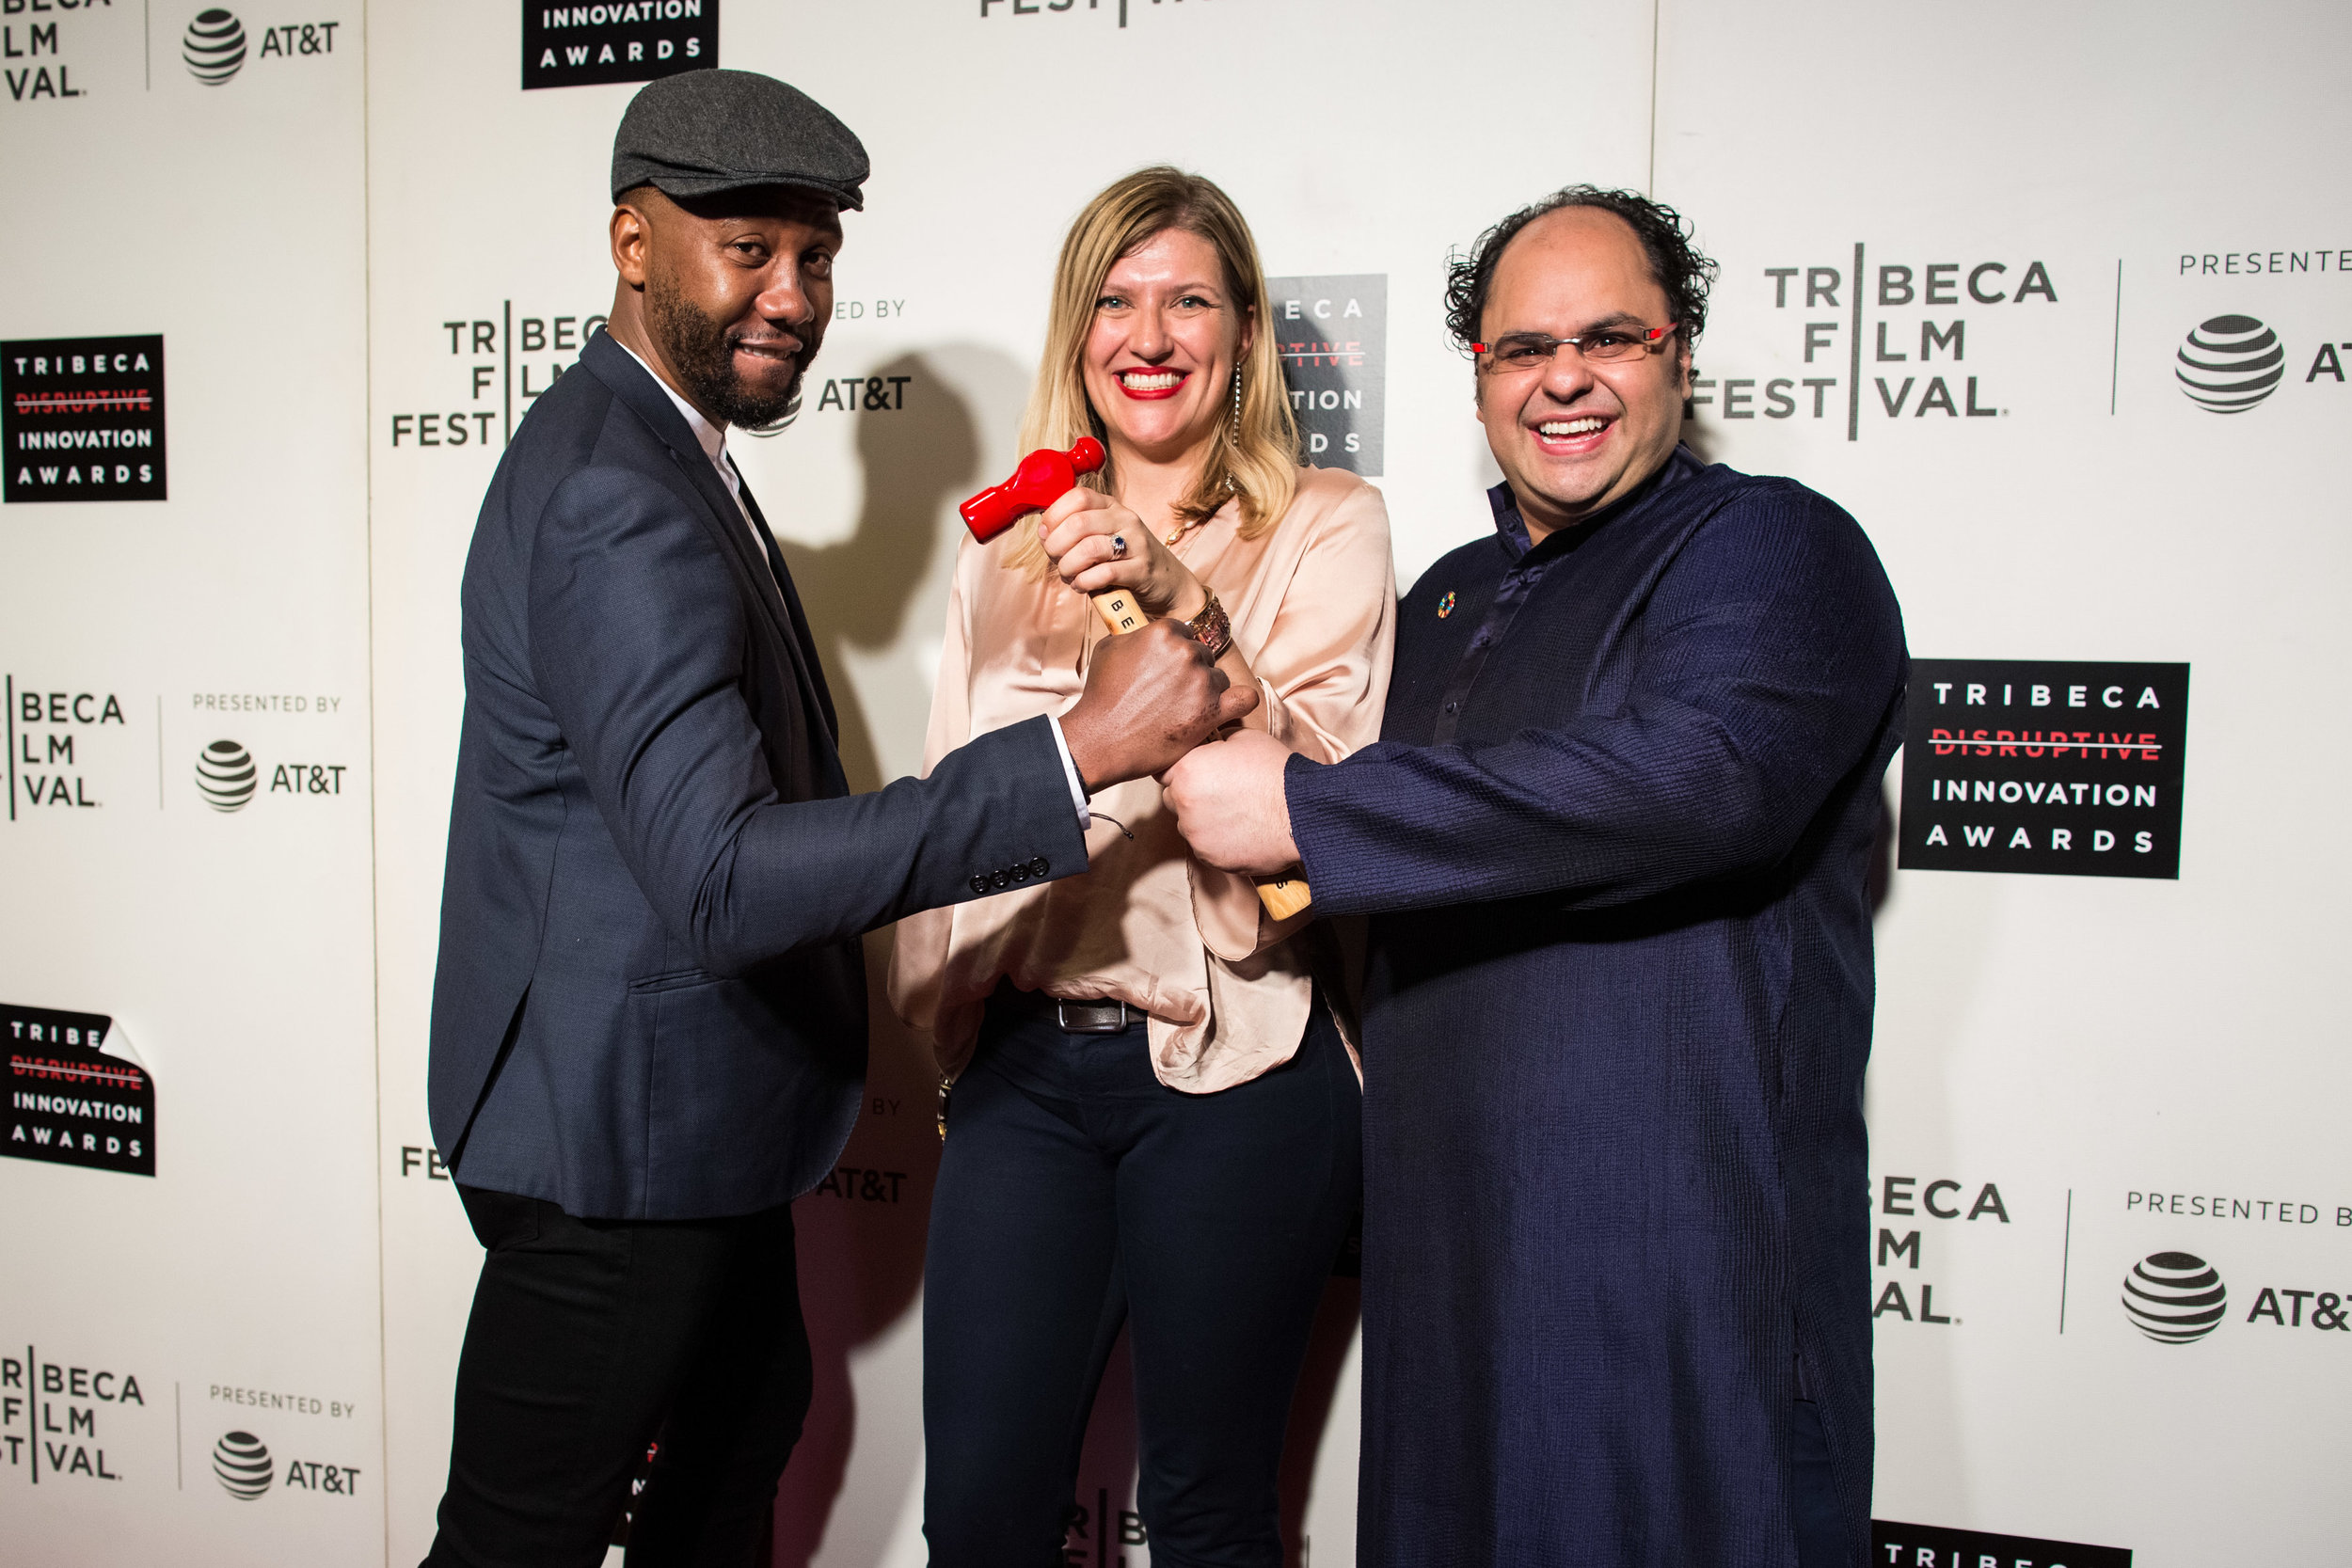 20190503-Tribeca Disruptive Innovation Awards-0037.jpg